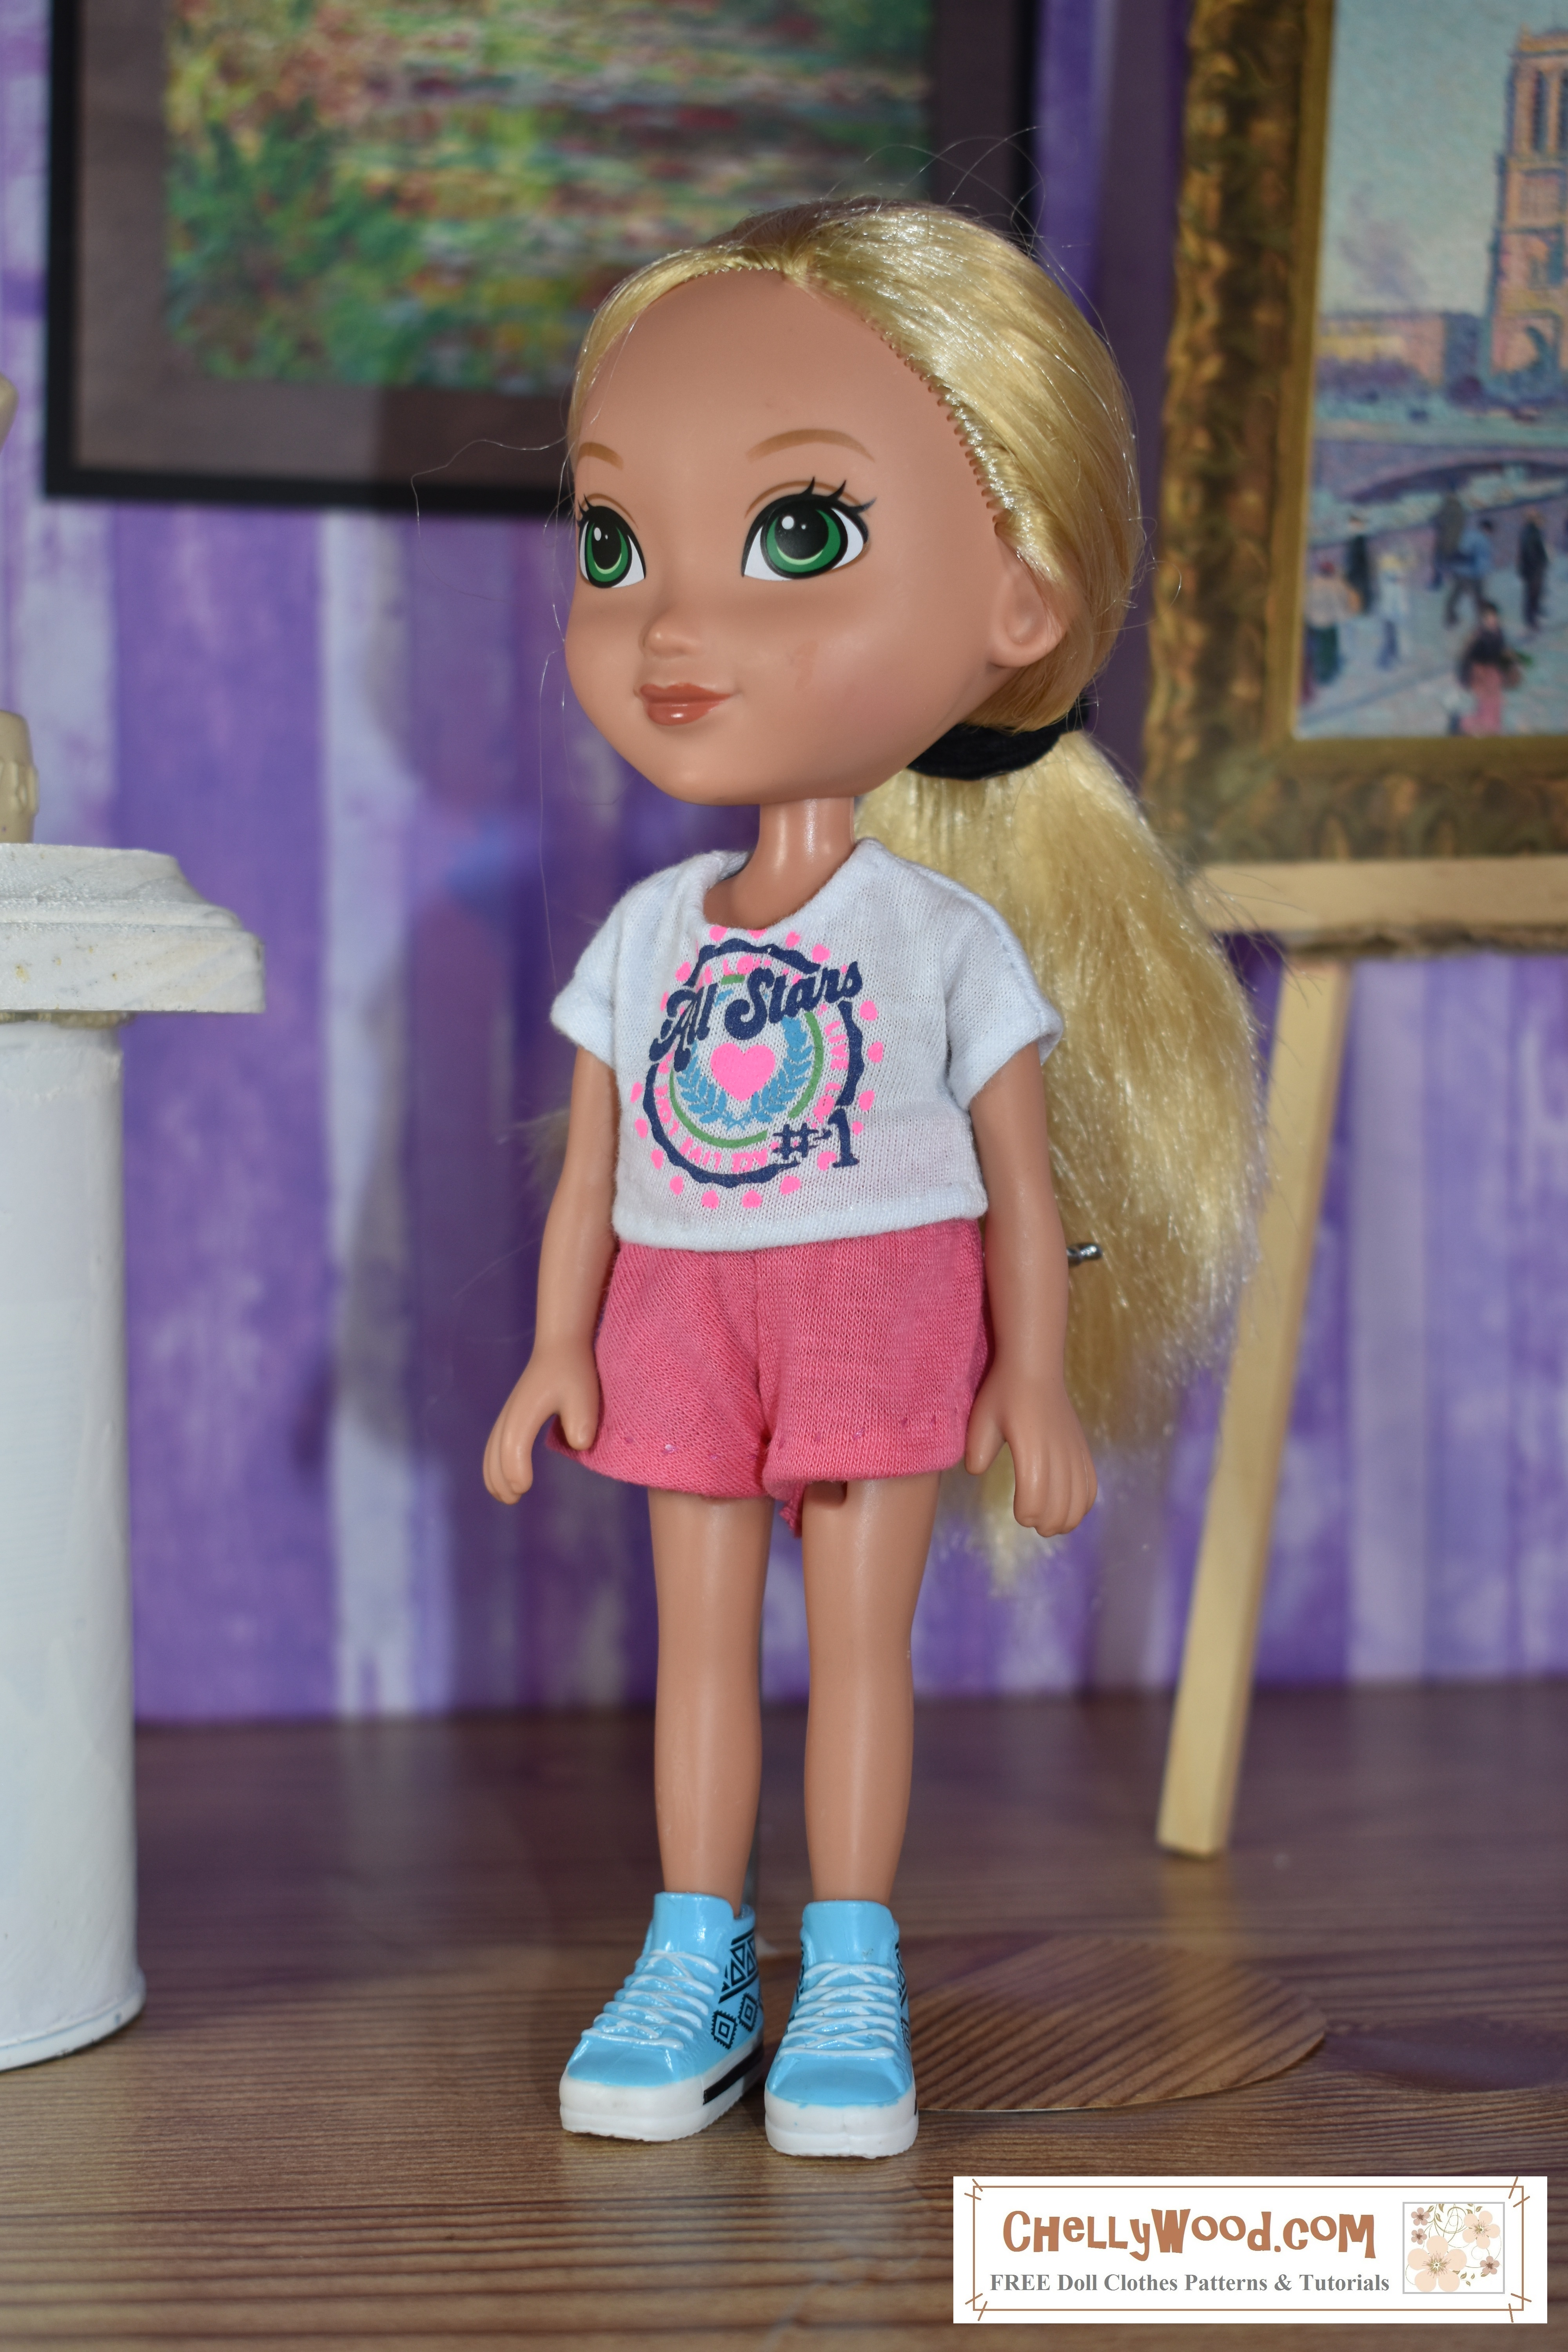 This is a photograph of the Dora the Explorer friend doll called Alana, wearing handmade shorts and a graphic tee shirt. She stands among statues and paintings in an art gallery. The tee shirt and shorts she wears are made of jersey fabric.